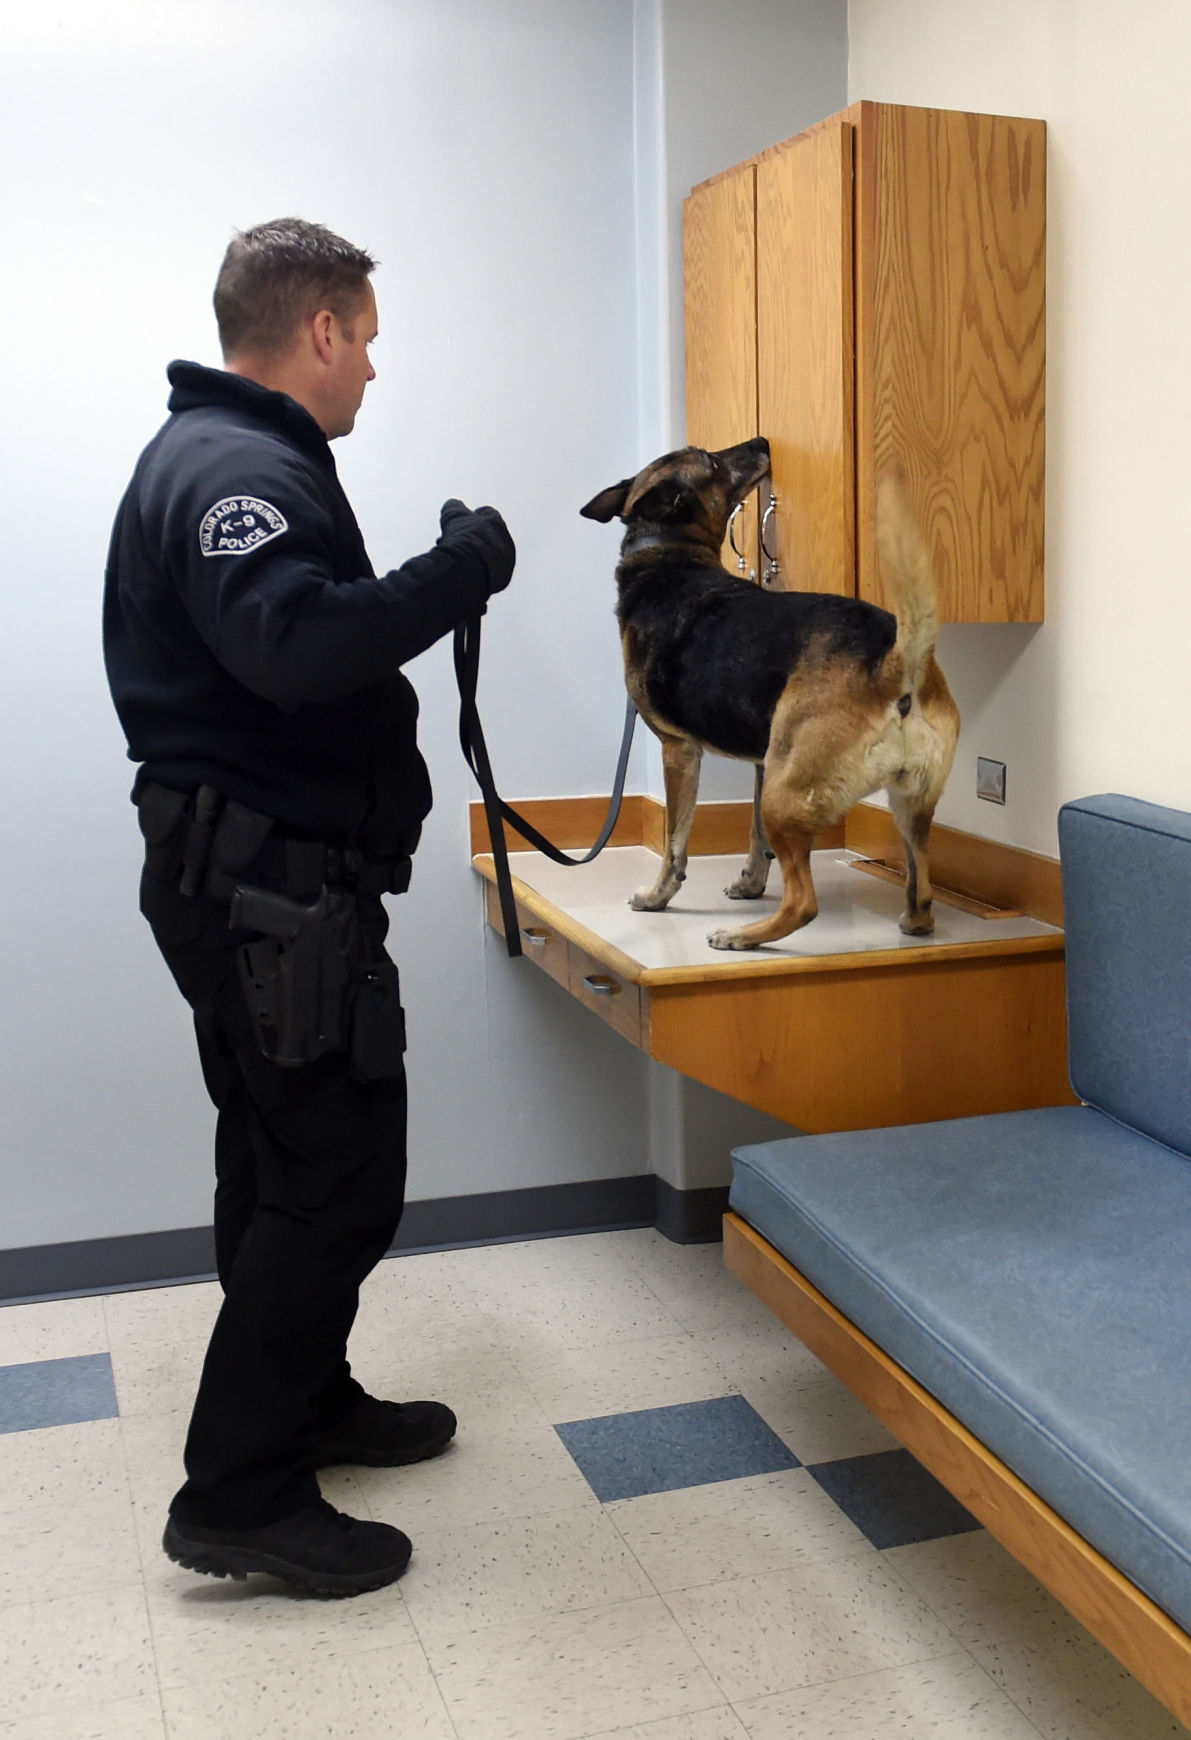 Hometown Heroes: Police K-9 unit recognized for protecting community